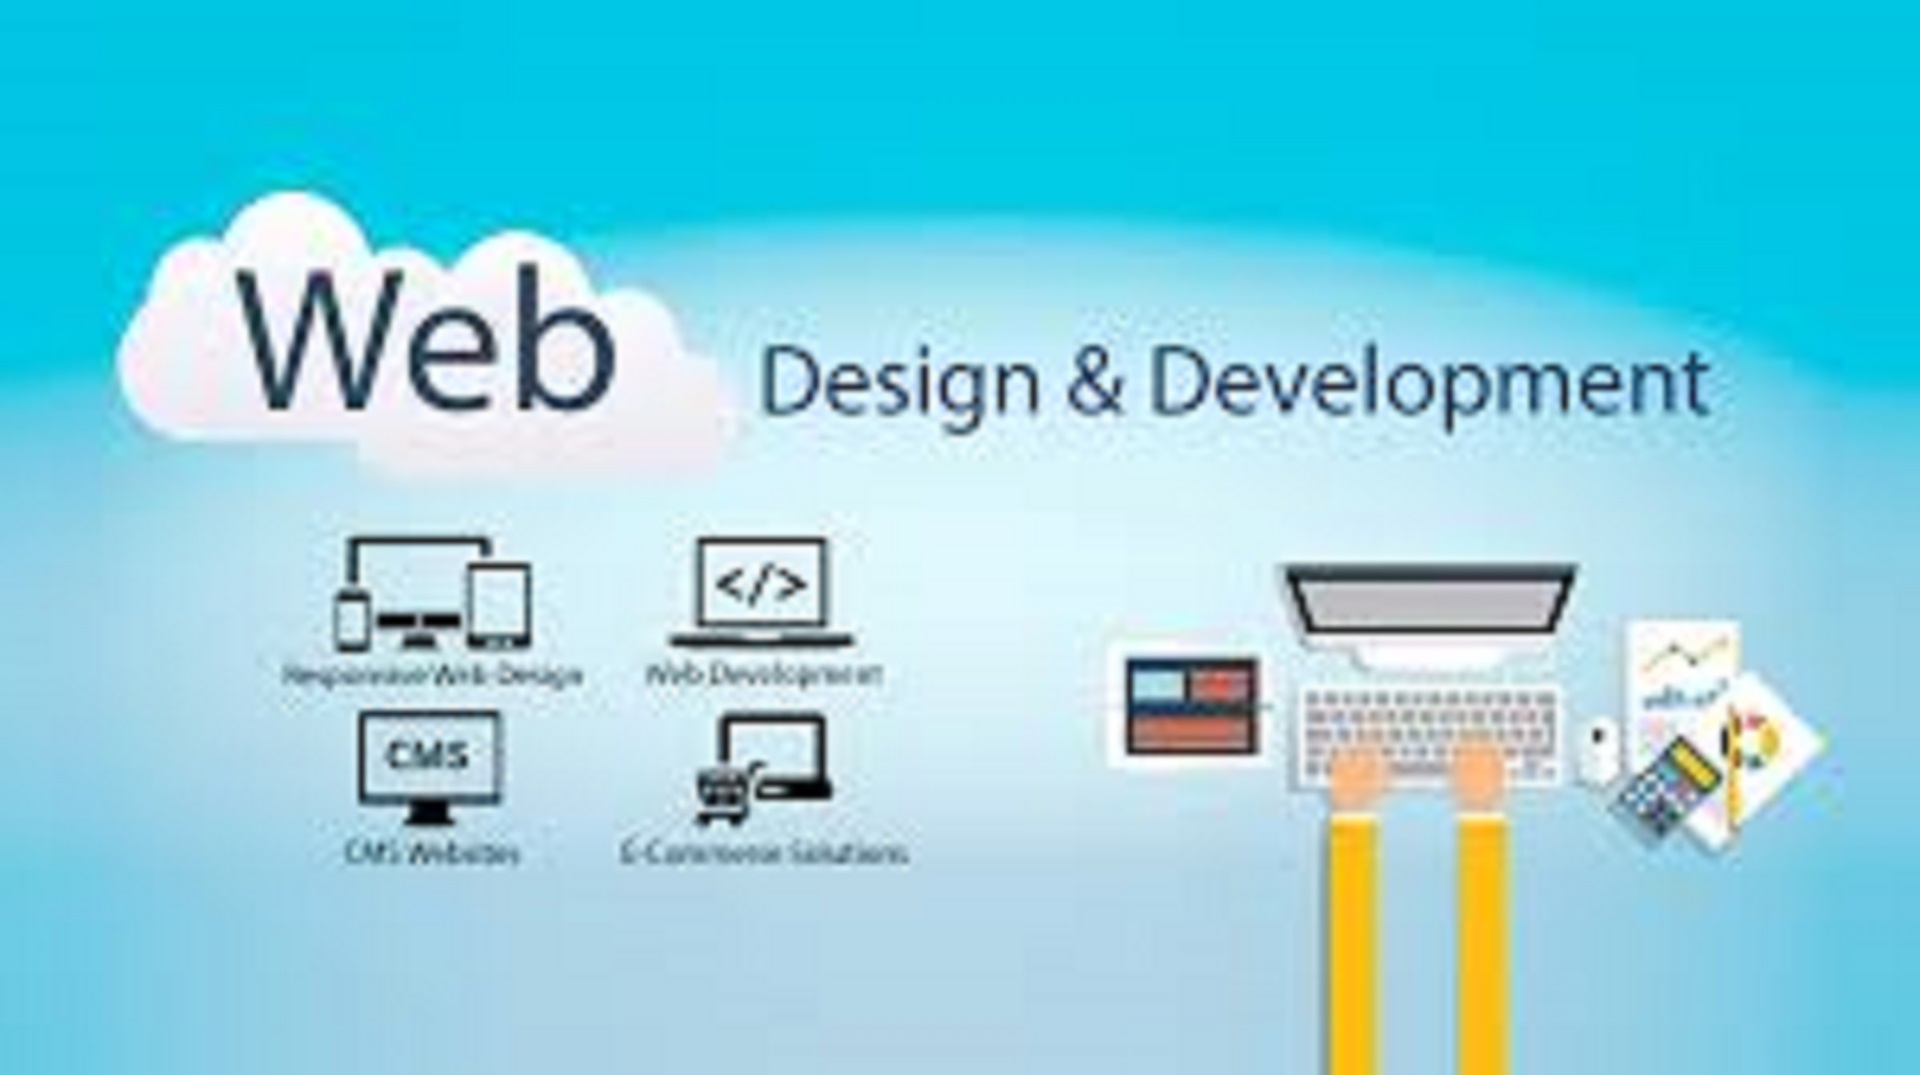 I'm Your Web Developer In Php, Codeigniter, Database, Wordpress